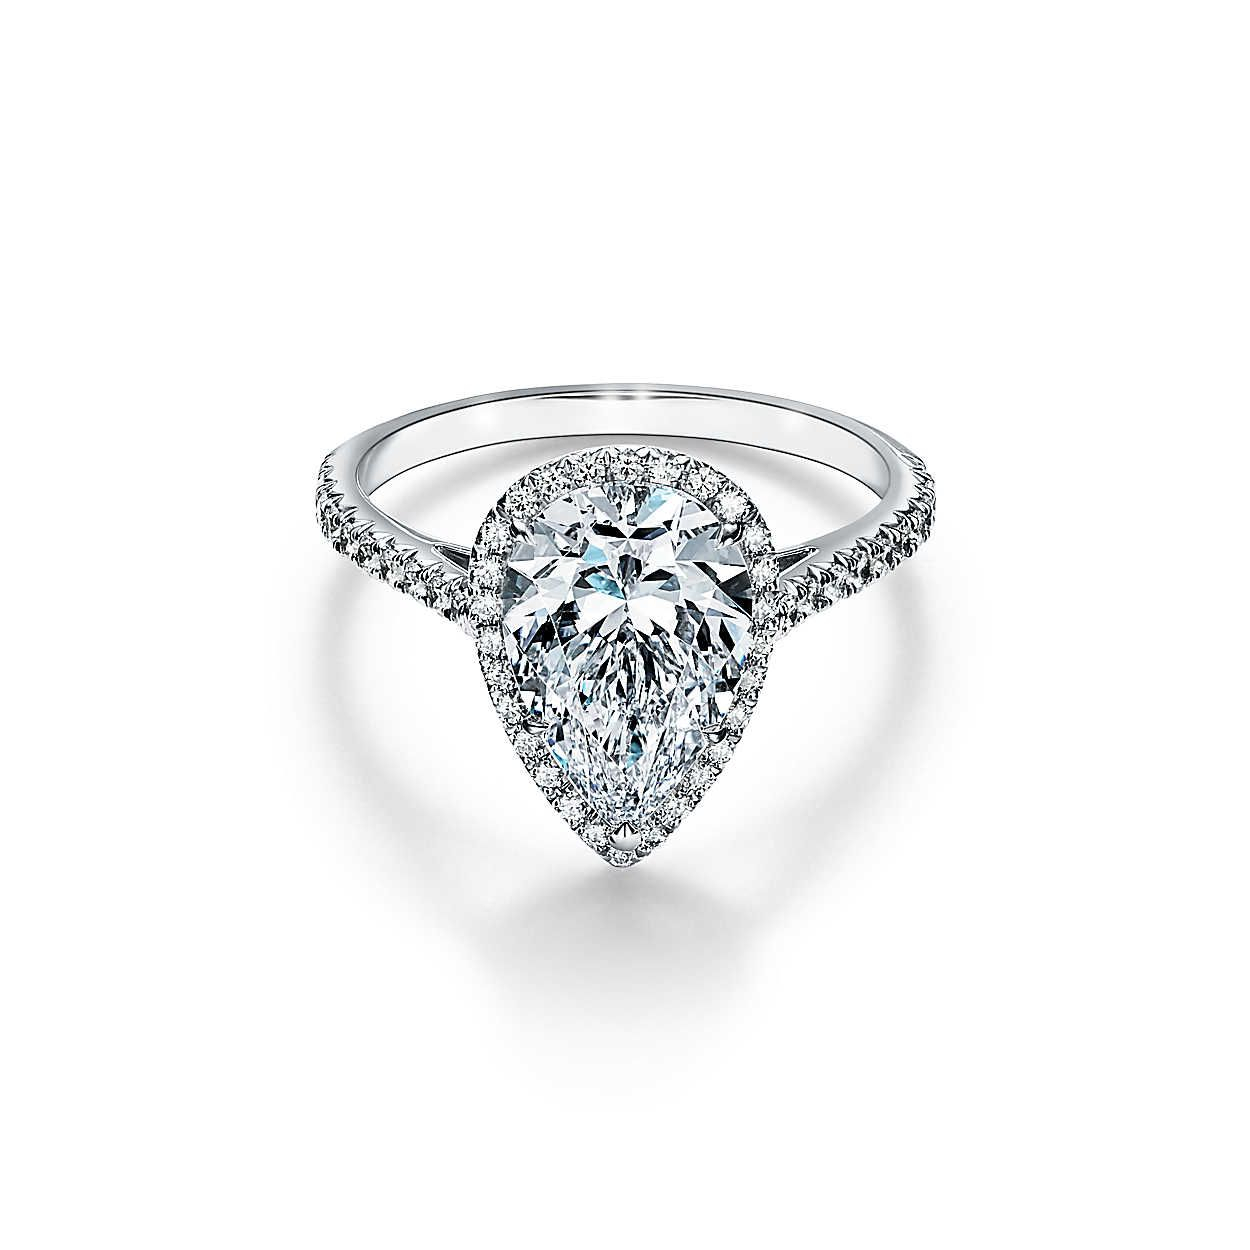 34 Pear Shaped Engagement Rings For Every Bride Inside Tryst Pear Shaped Diamond Engagement Rings (View 7 of 25)